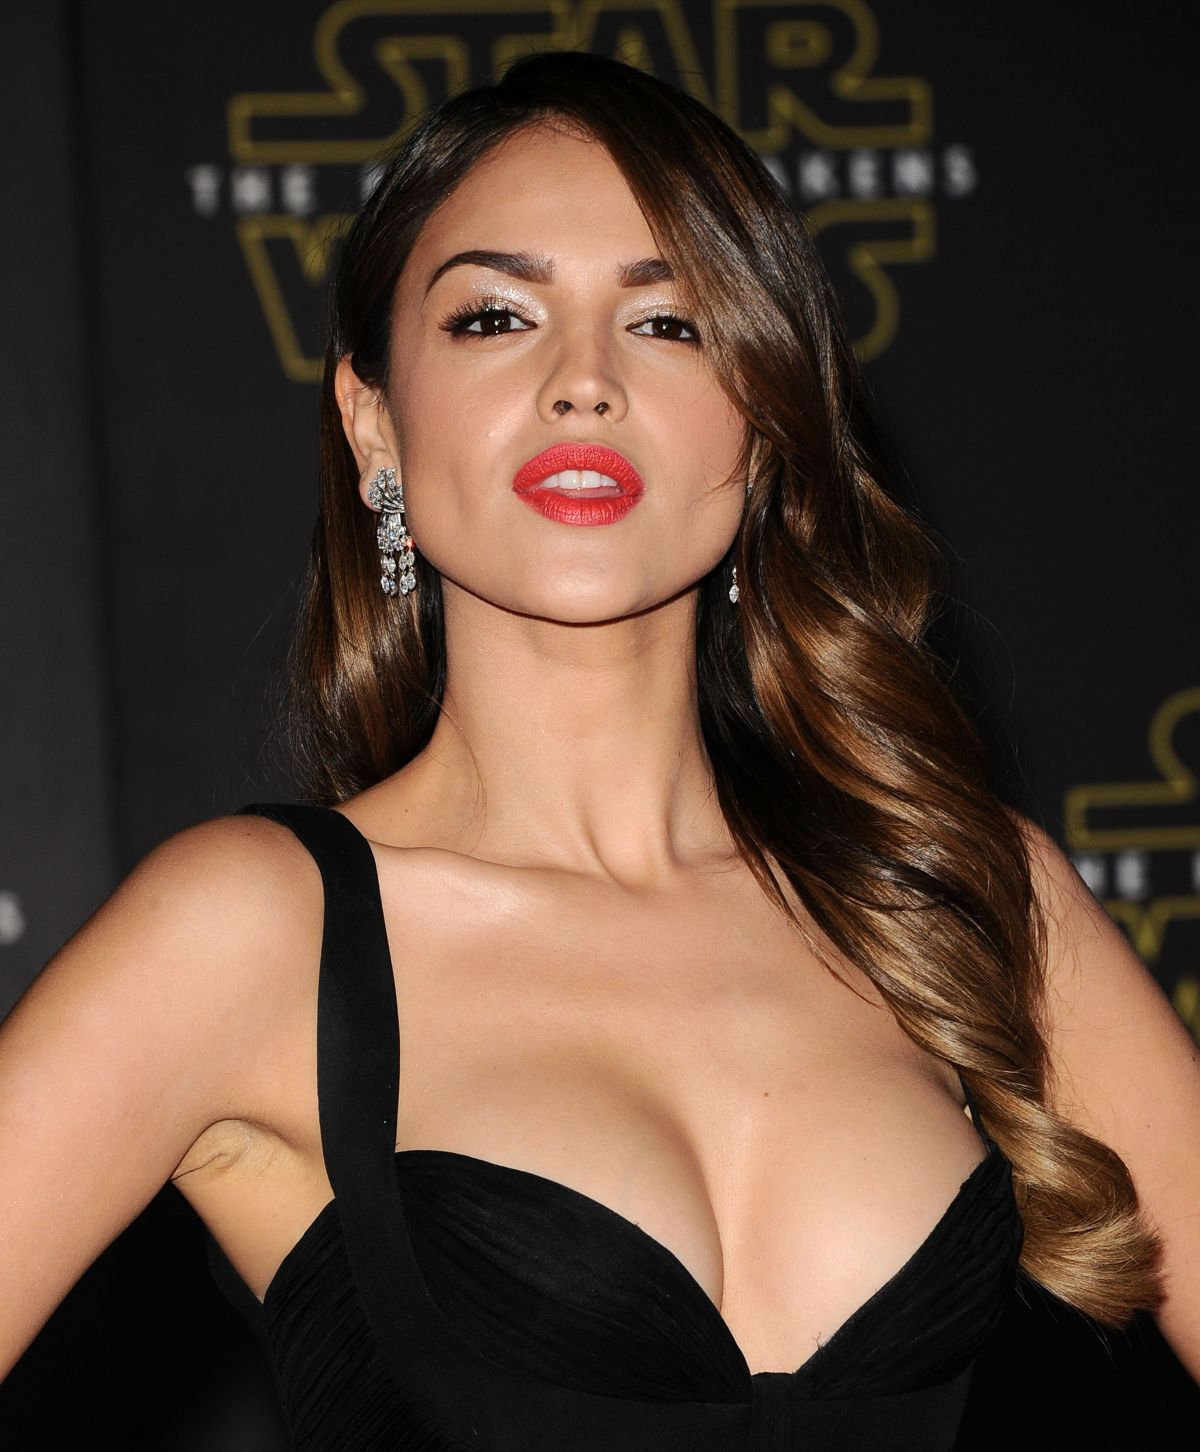 EIZA GONZALEZ at Star Wars: Episode VII – The Force Awakens Premiere in Hollywood 12/14/2015